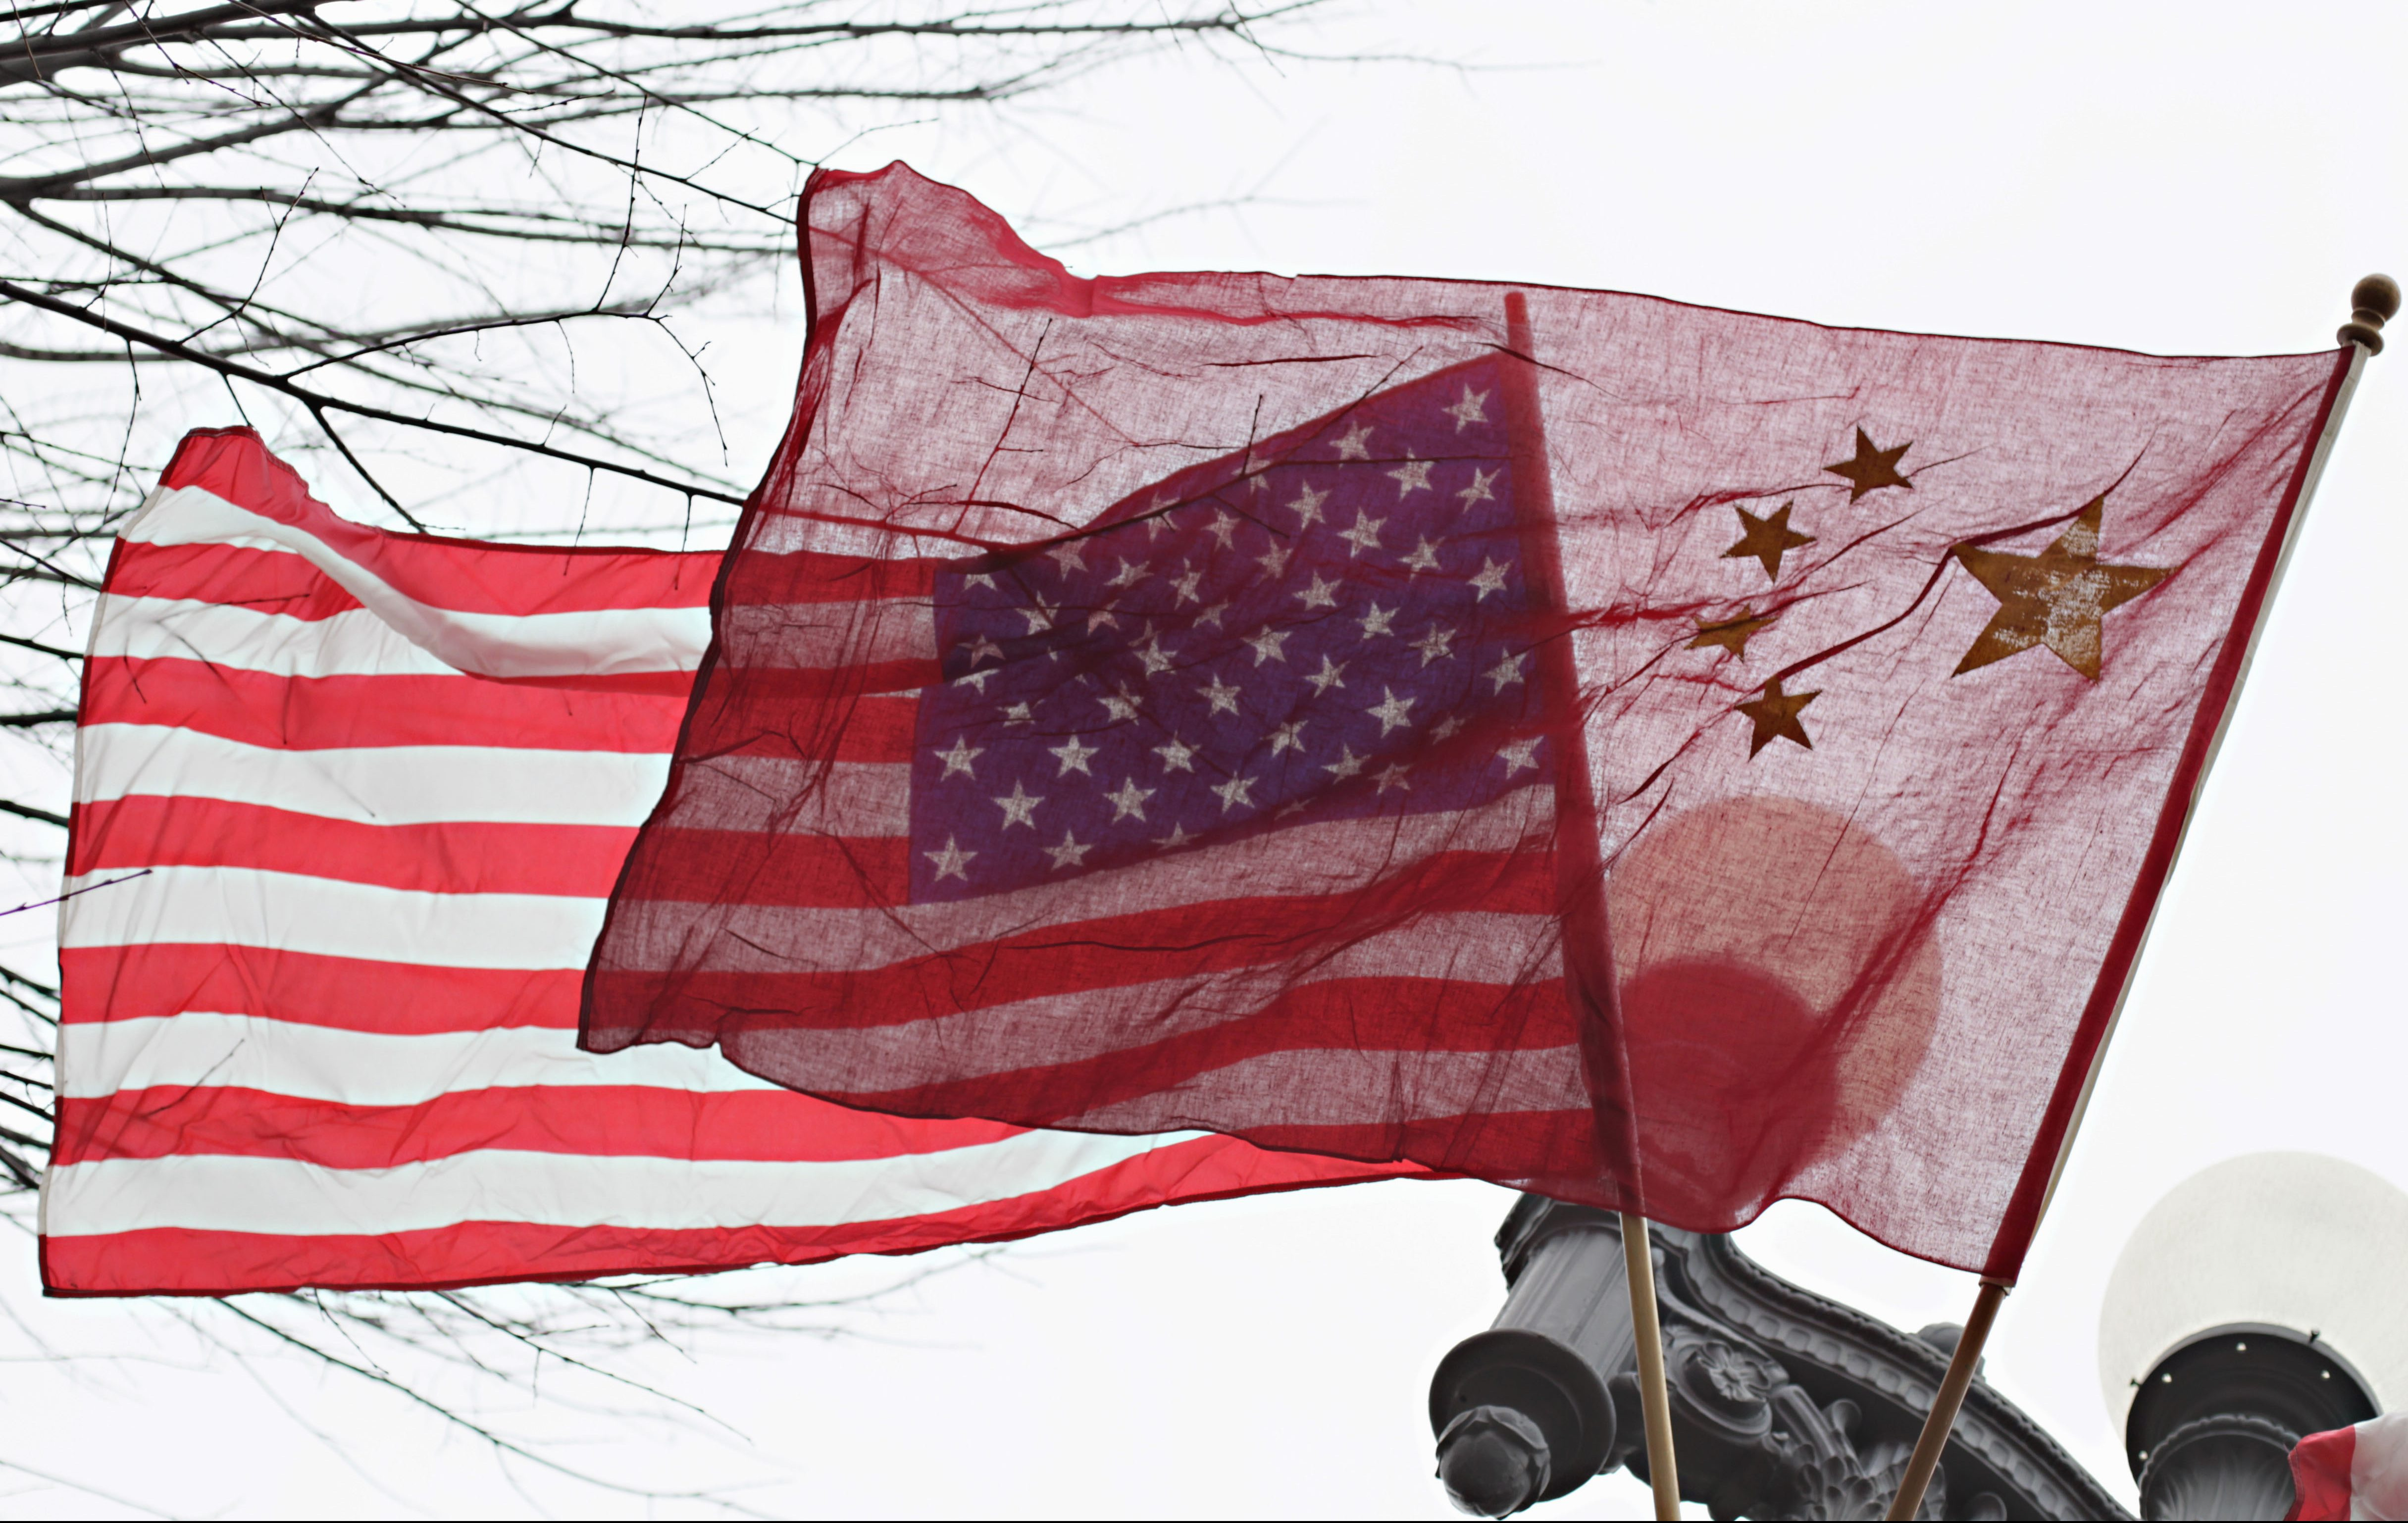 American and Chinese flags fly along Pennsylvania Avenue in front of the White House in Washington. The Justice Department's indictment last week of five Chinese military officials charged them with trying to pilfer confidential information from American companies. But even some of the alleged U.S. corporate victims of the hackers have little incentive to cheer any trade rupture with China. (AP Photo/Carolyn Kaster, File)